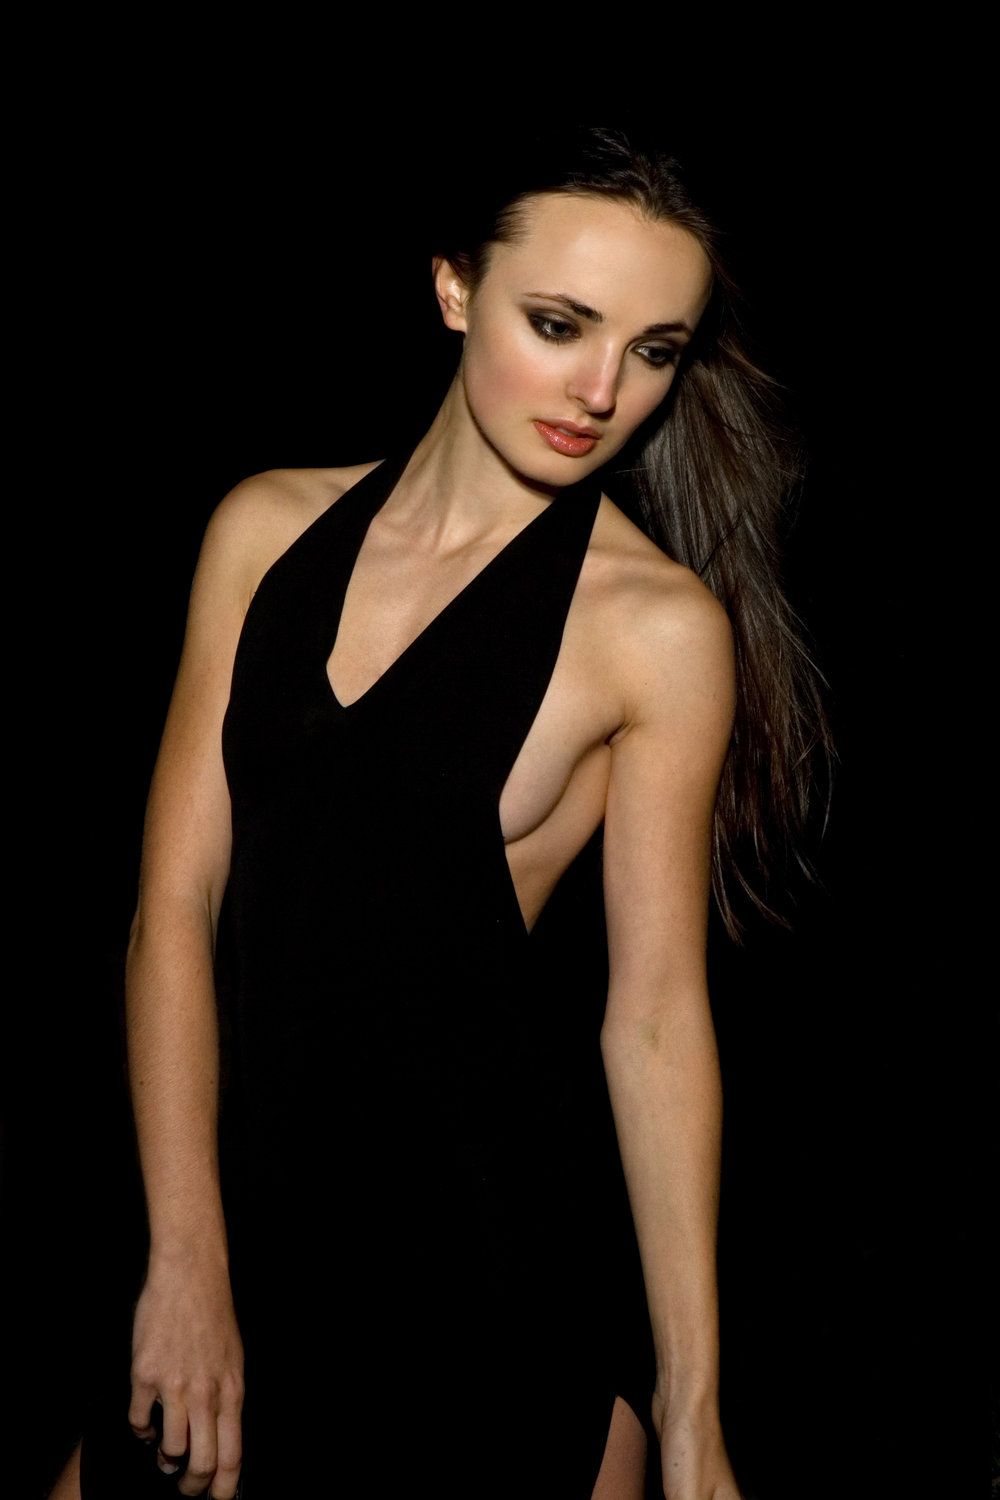 natallia retouch blk dress fo web (1).jpg